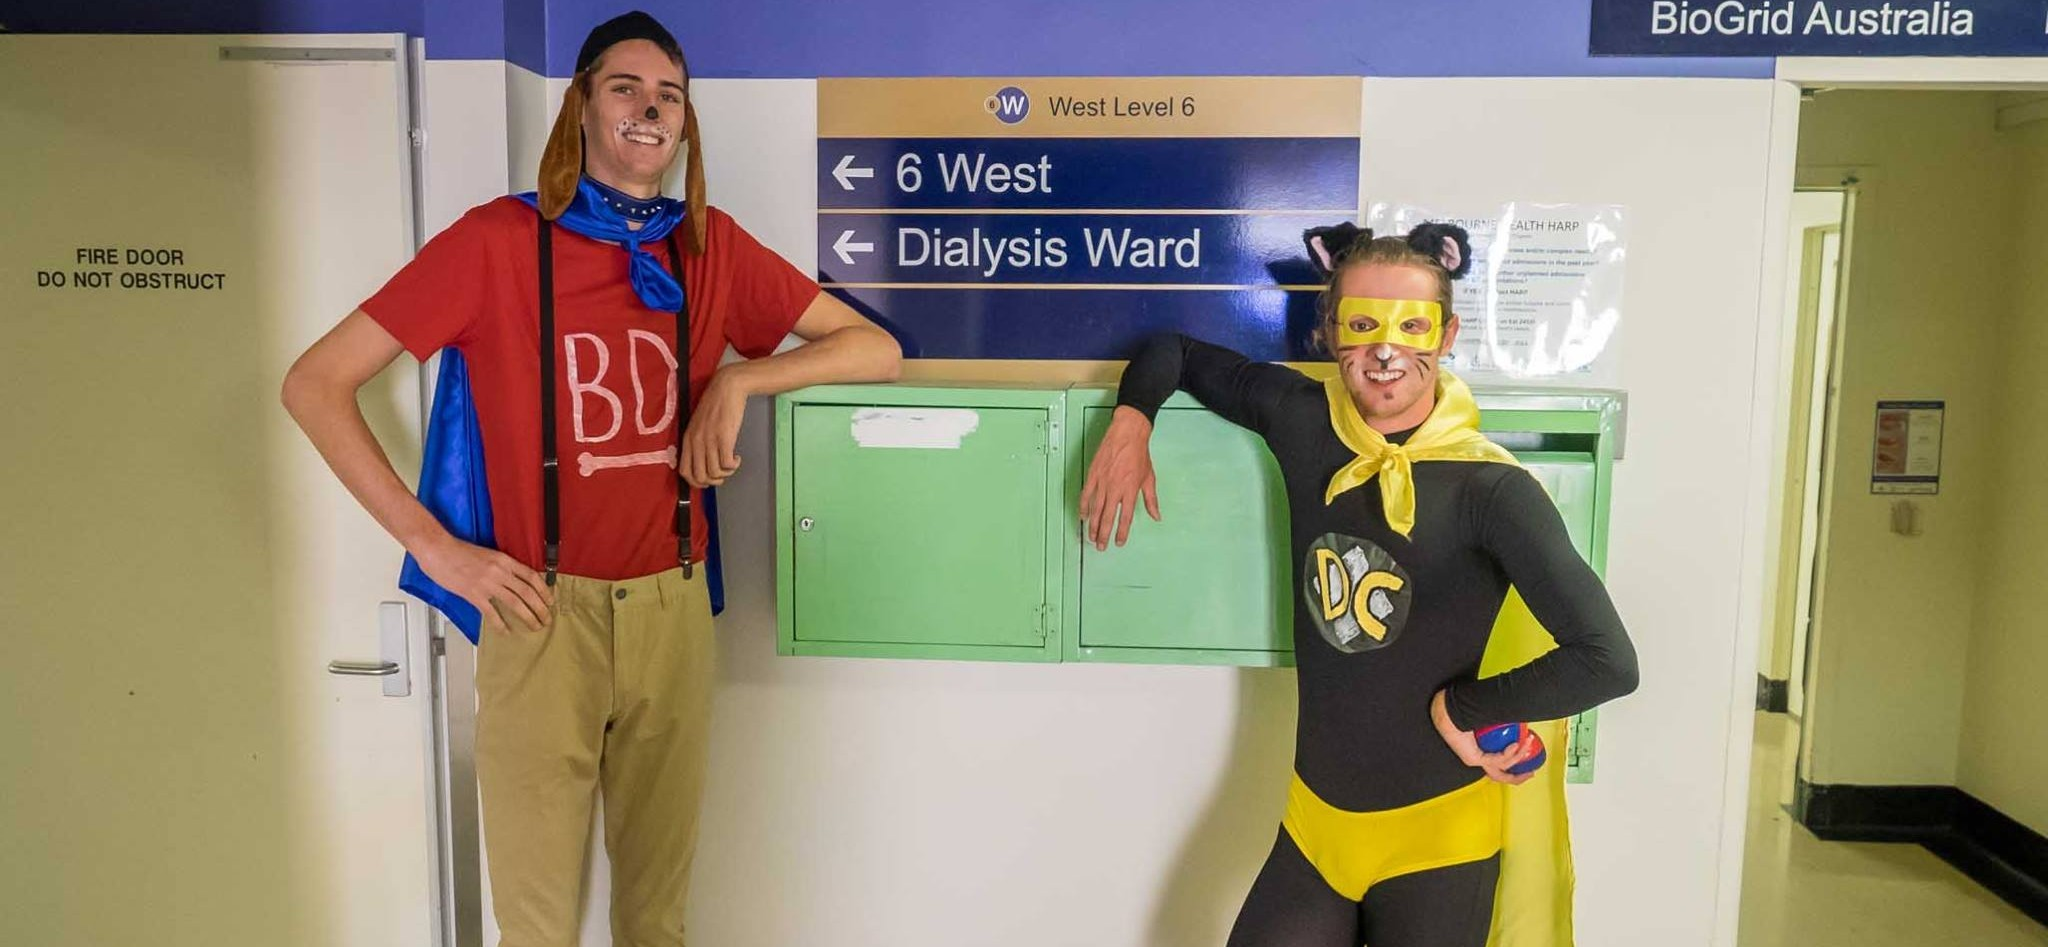 5 Good Reasons To See Dialysis Cat: City Crime Fighter!